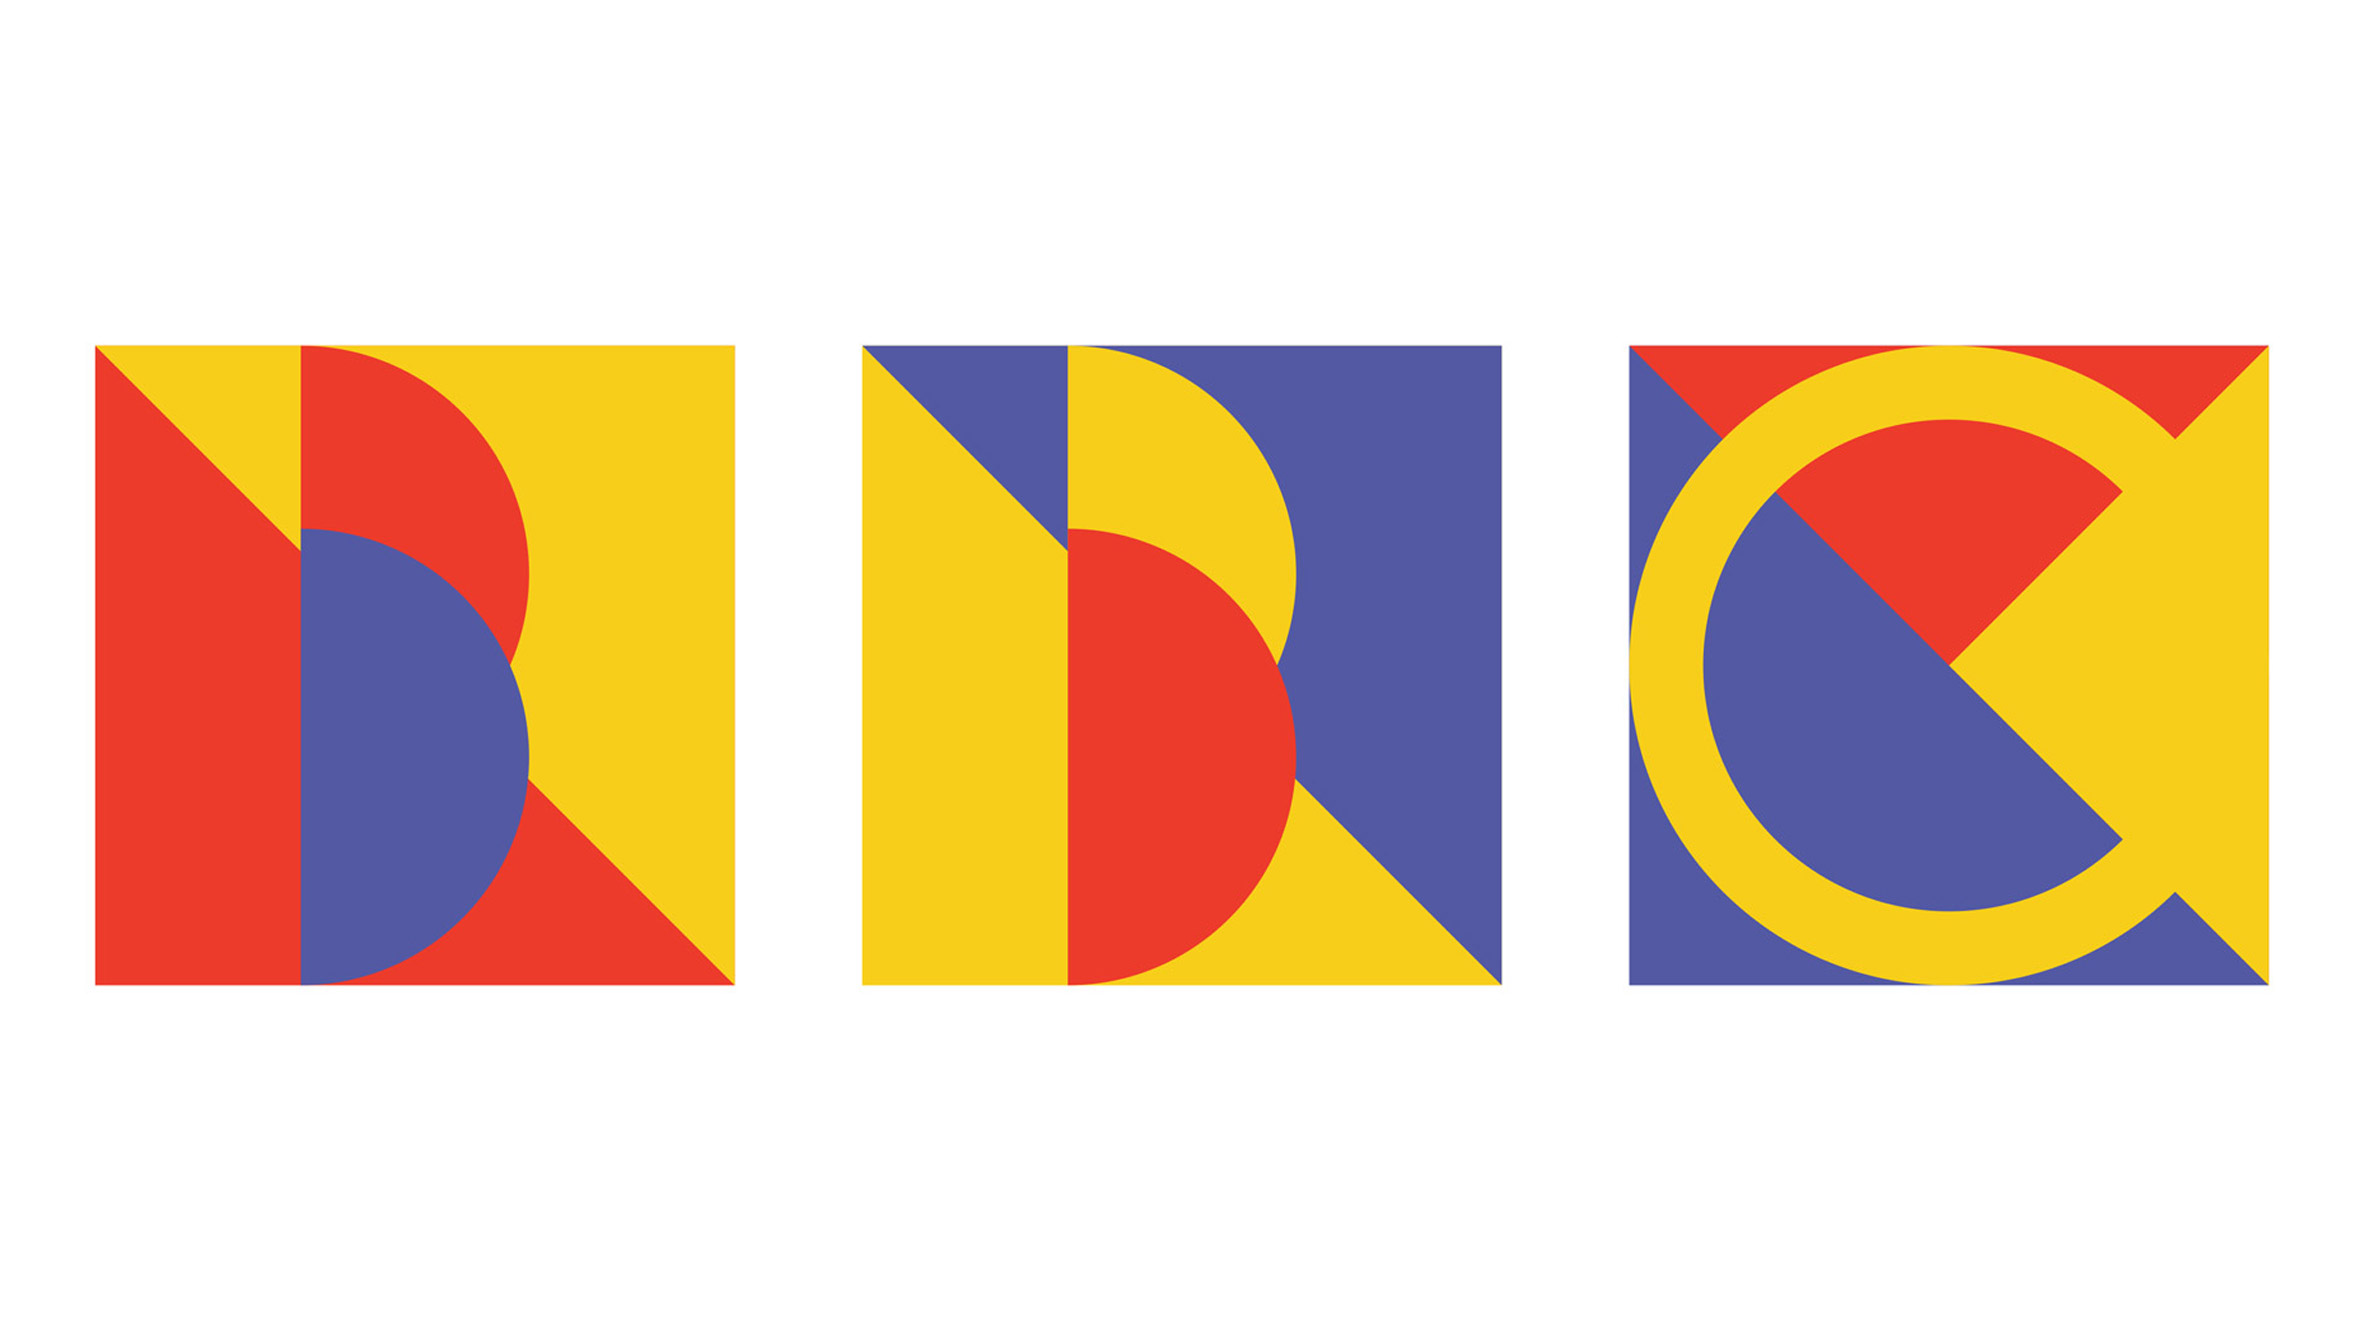 bauhaus-logo-redesigns-graphics_dezeen_2364_edit.jpg